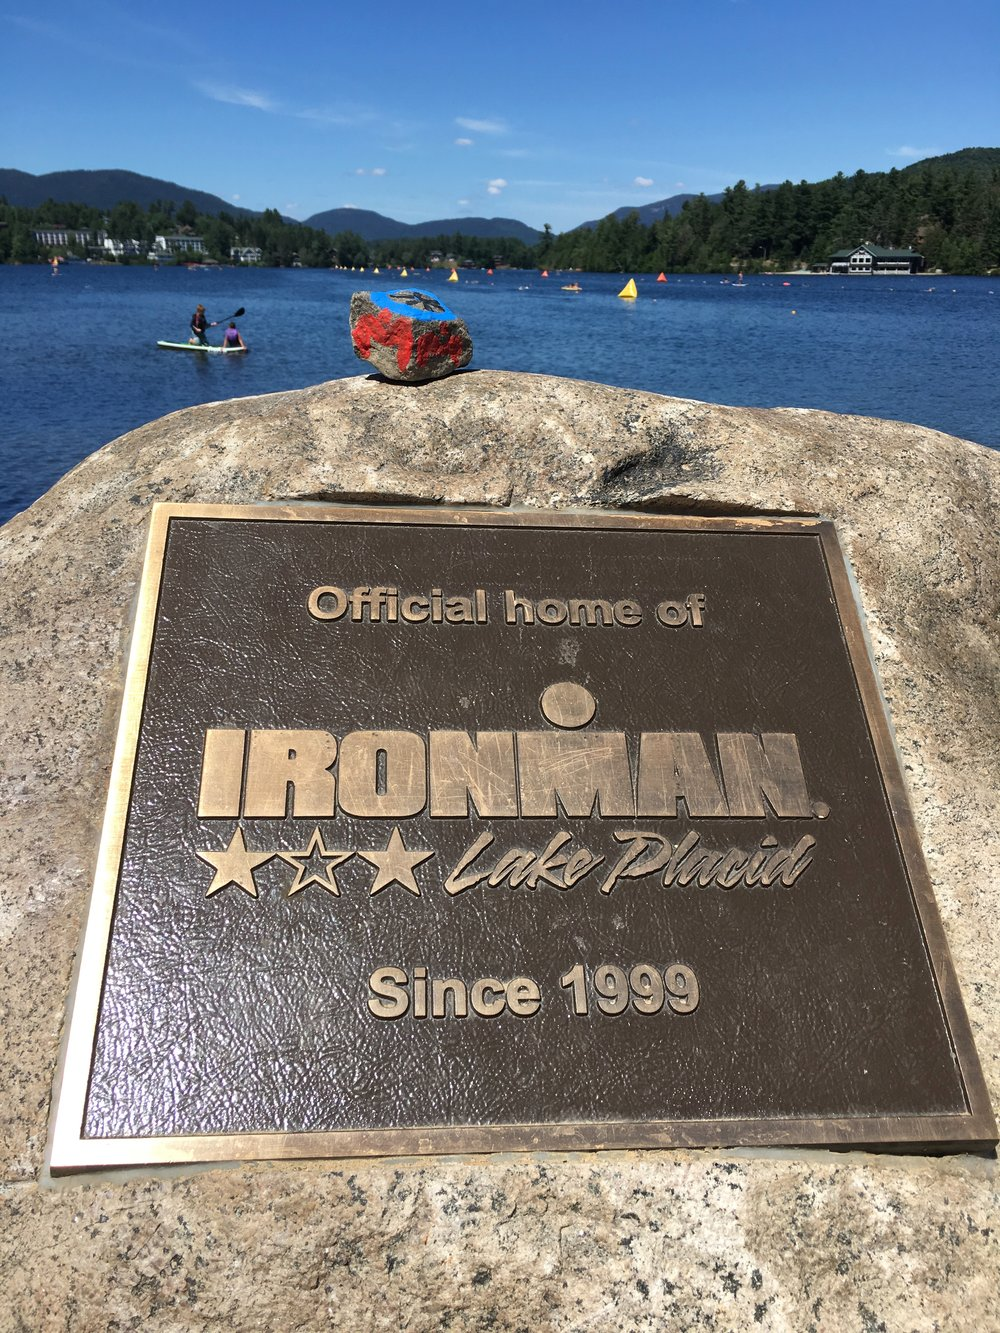 IRONMAN Lake Placid plaque at swim start